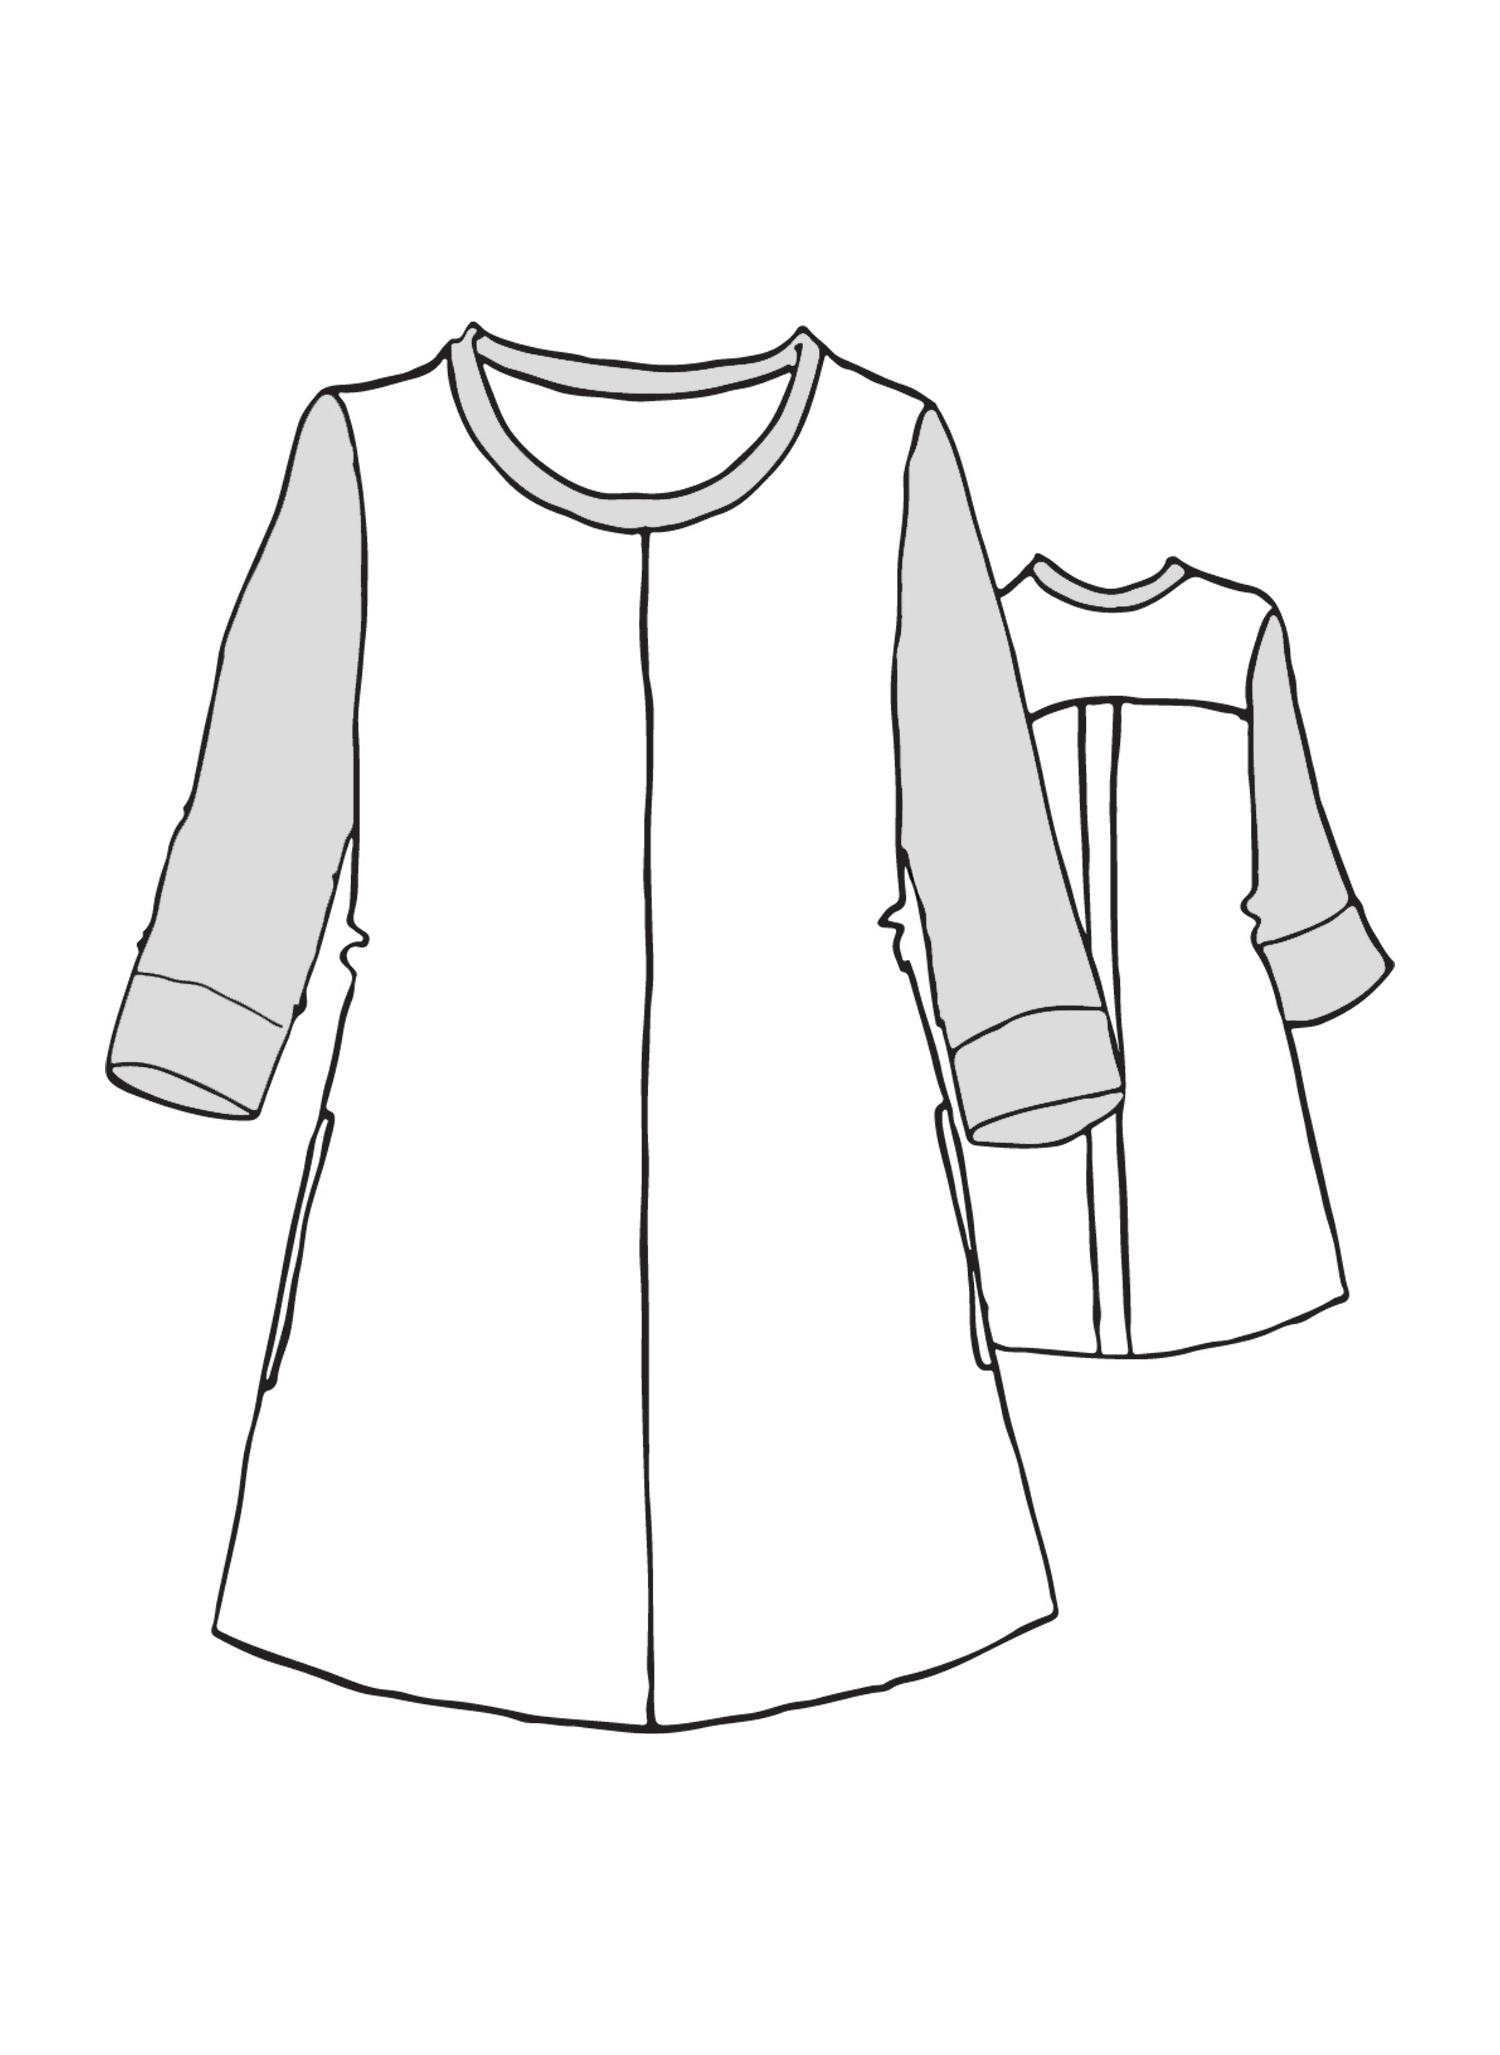 Horizon Tunic sketch image